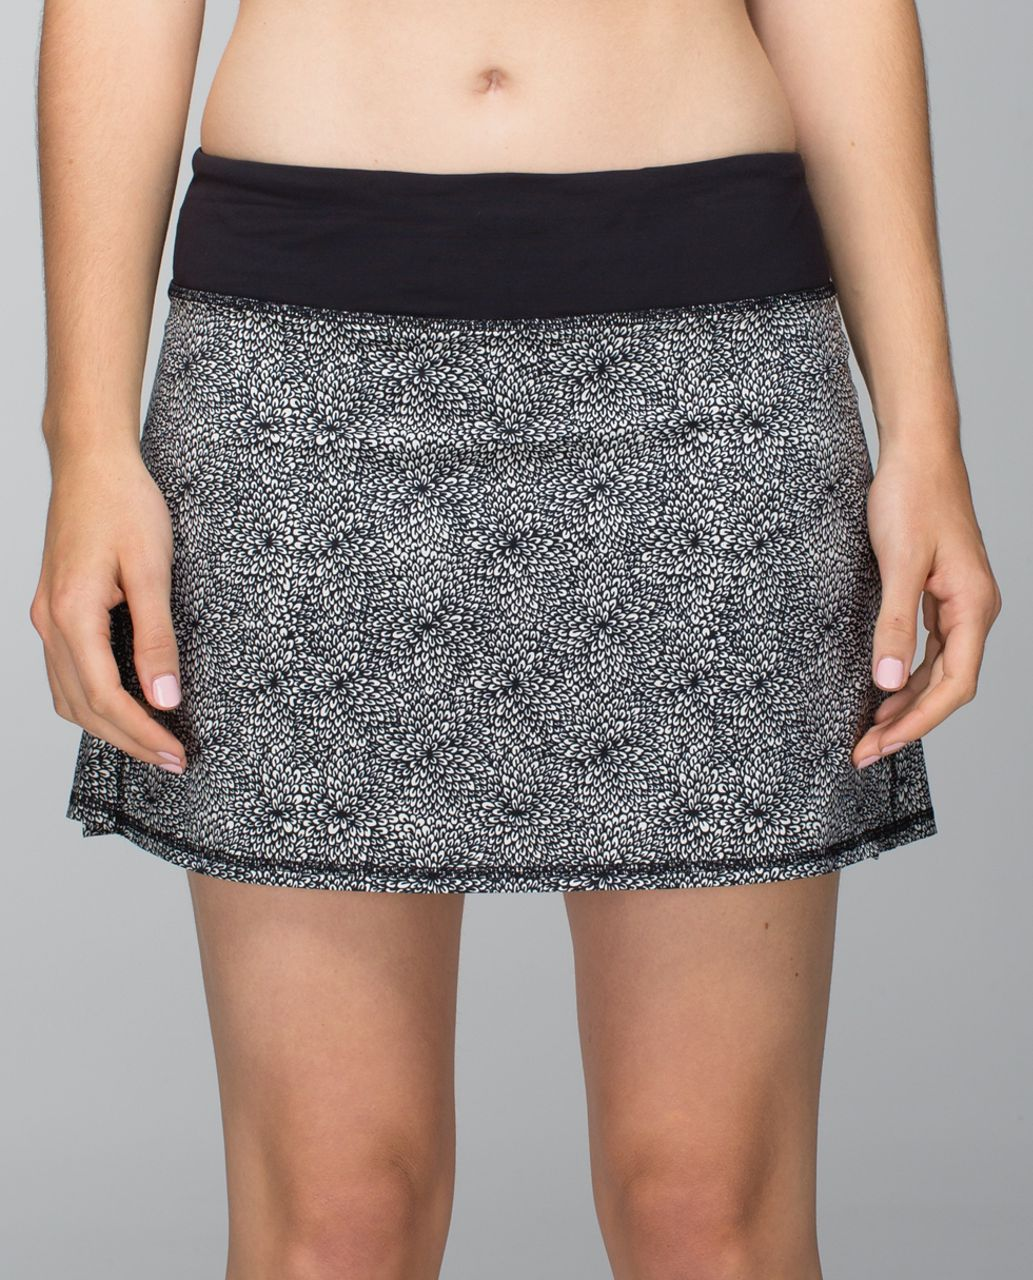 Lululemon Run:  Pace Setter Skirt *4-way Stretch (Tall) - Plush Petal Black Ghost / Black